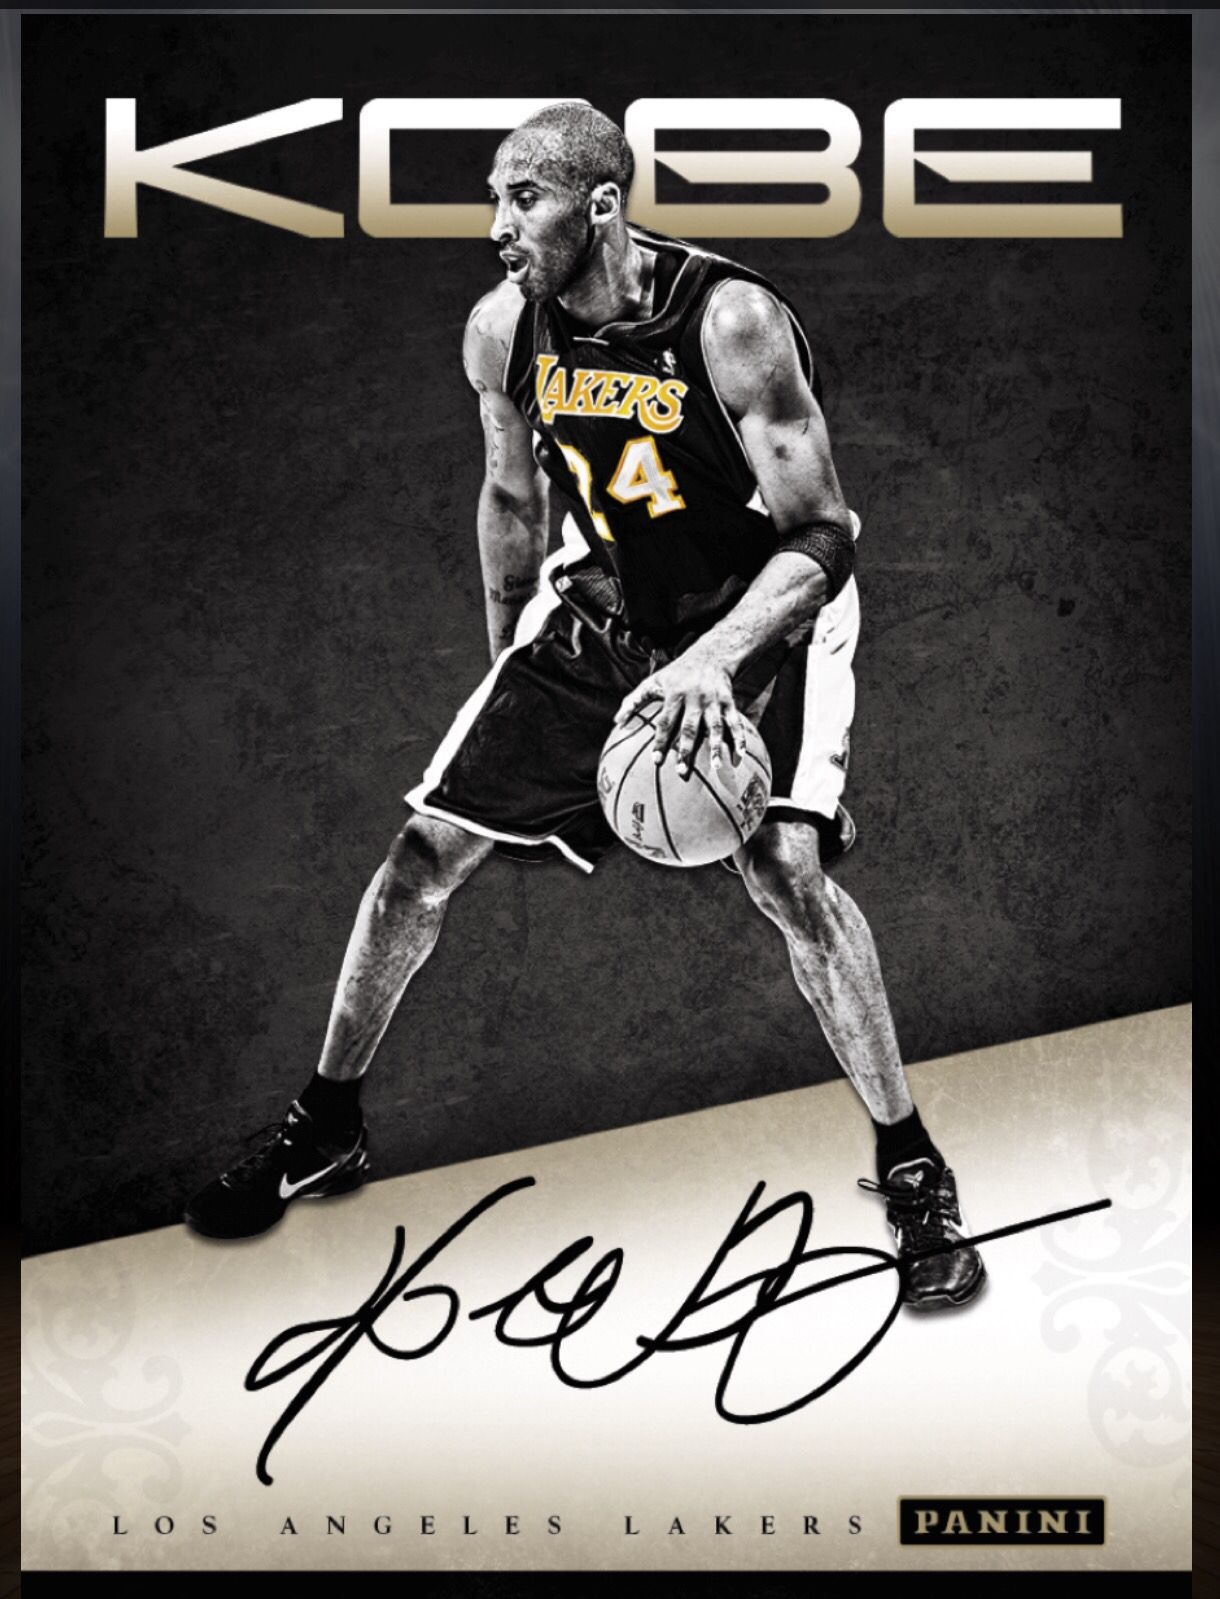 Kobe Bryant Los Angeles Lakers Autograph Card 2015 2016 Panini Dunk Kobe Bryant Los Angeles Lakers Sports Cards